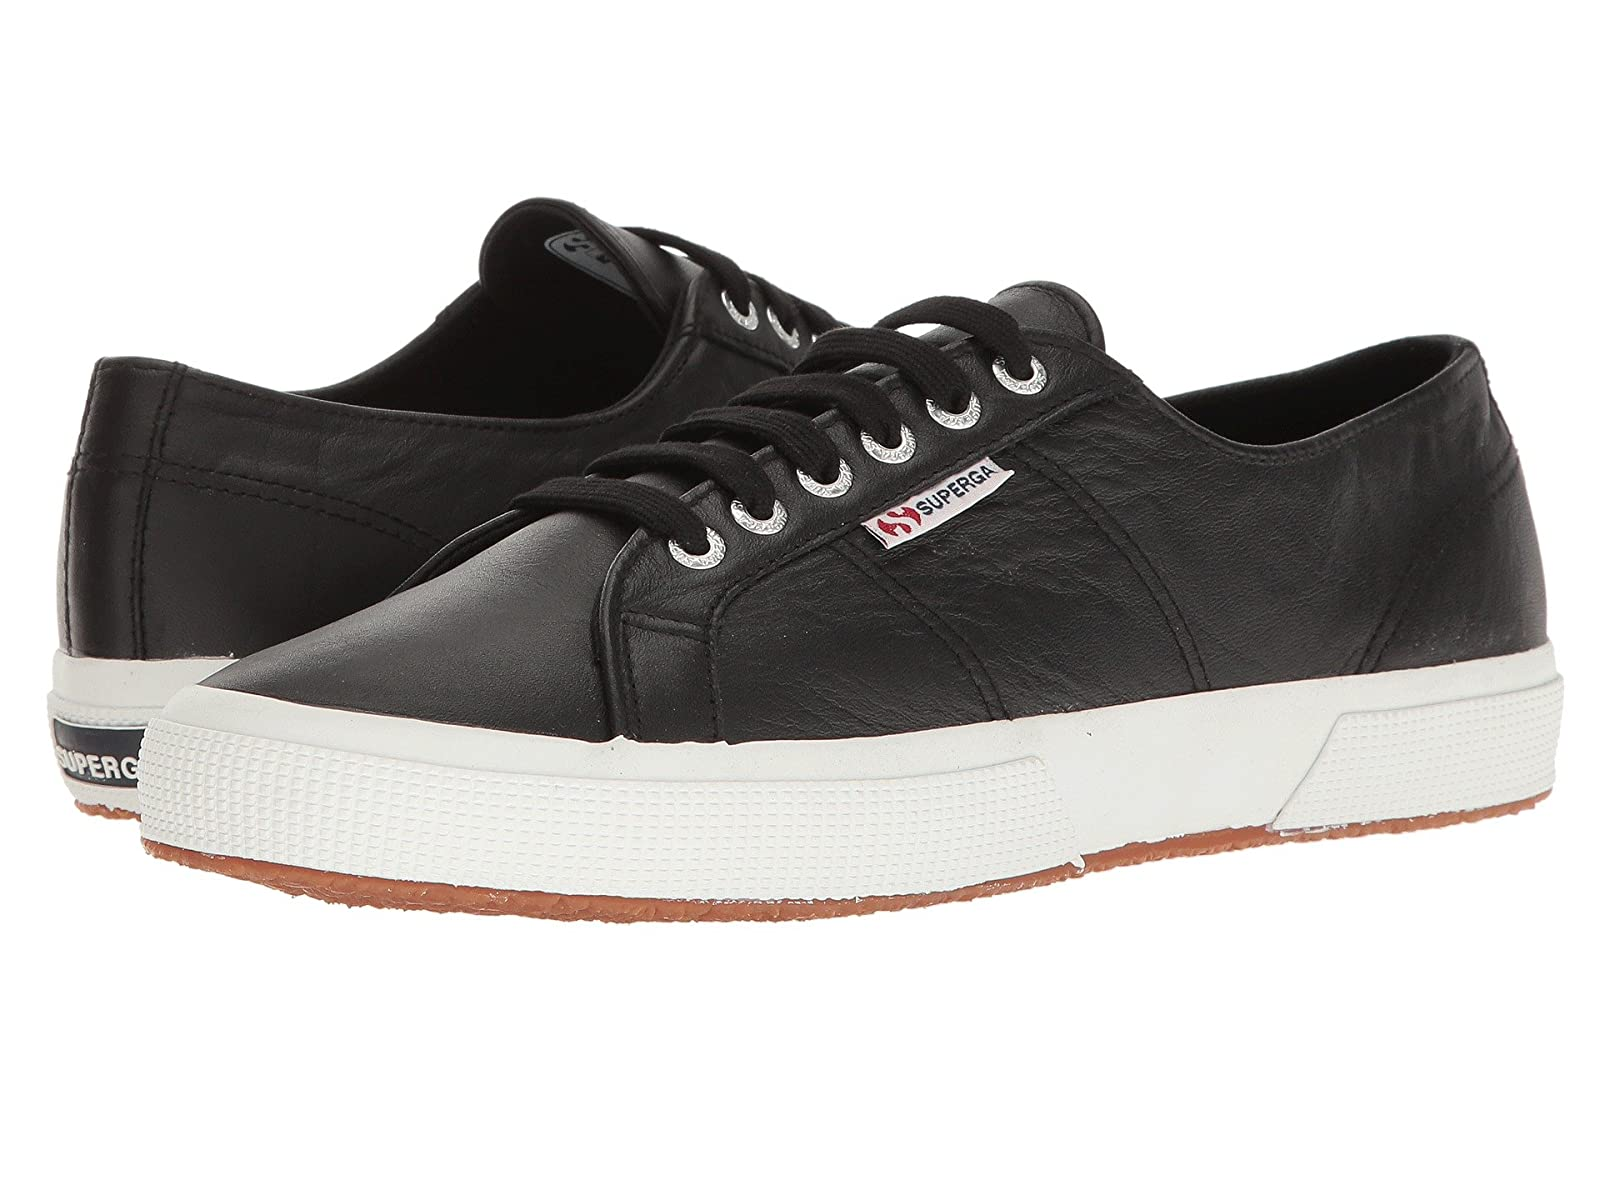 Superga 2750 AuleauCheap and distinctive eye-catching shoes